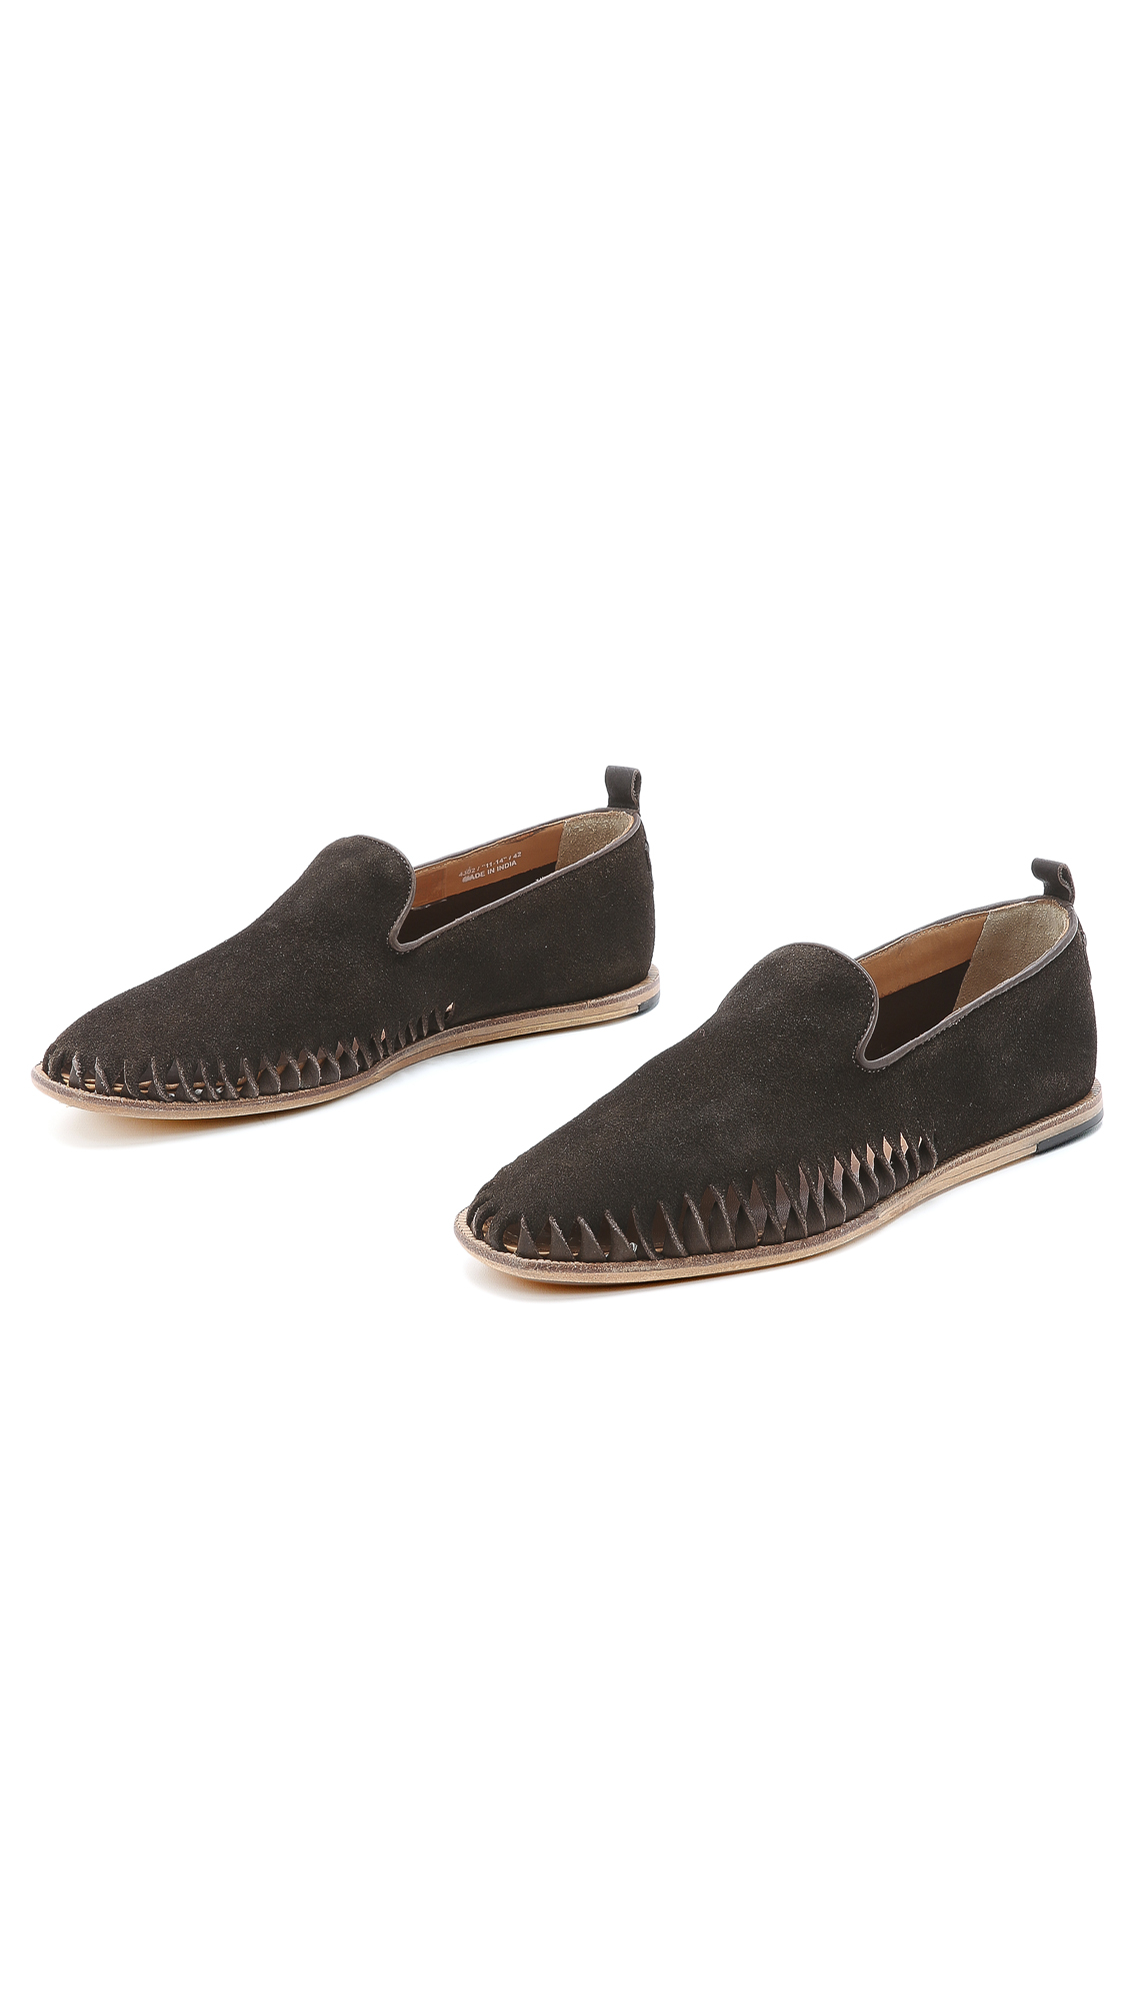 h by hudson ramos slippers in brown for men lyst. Black Bedroom Furniture Sets. Home Design Ideas